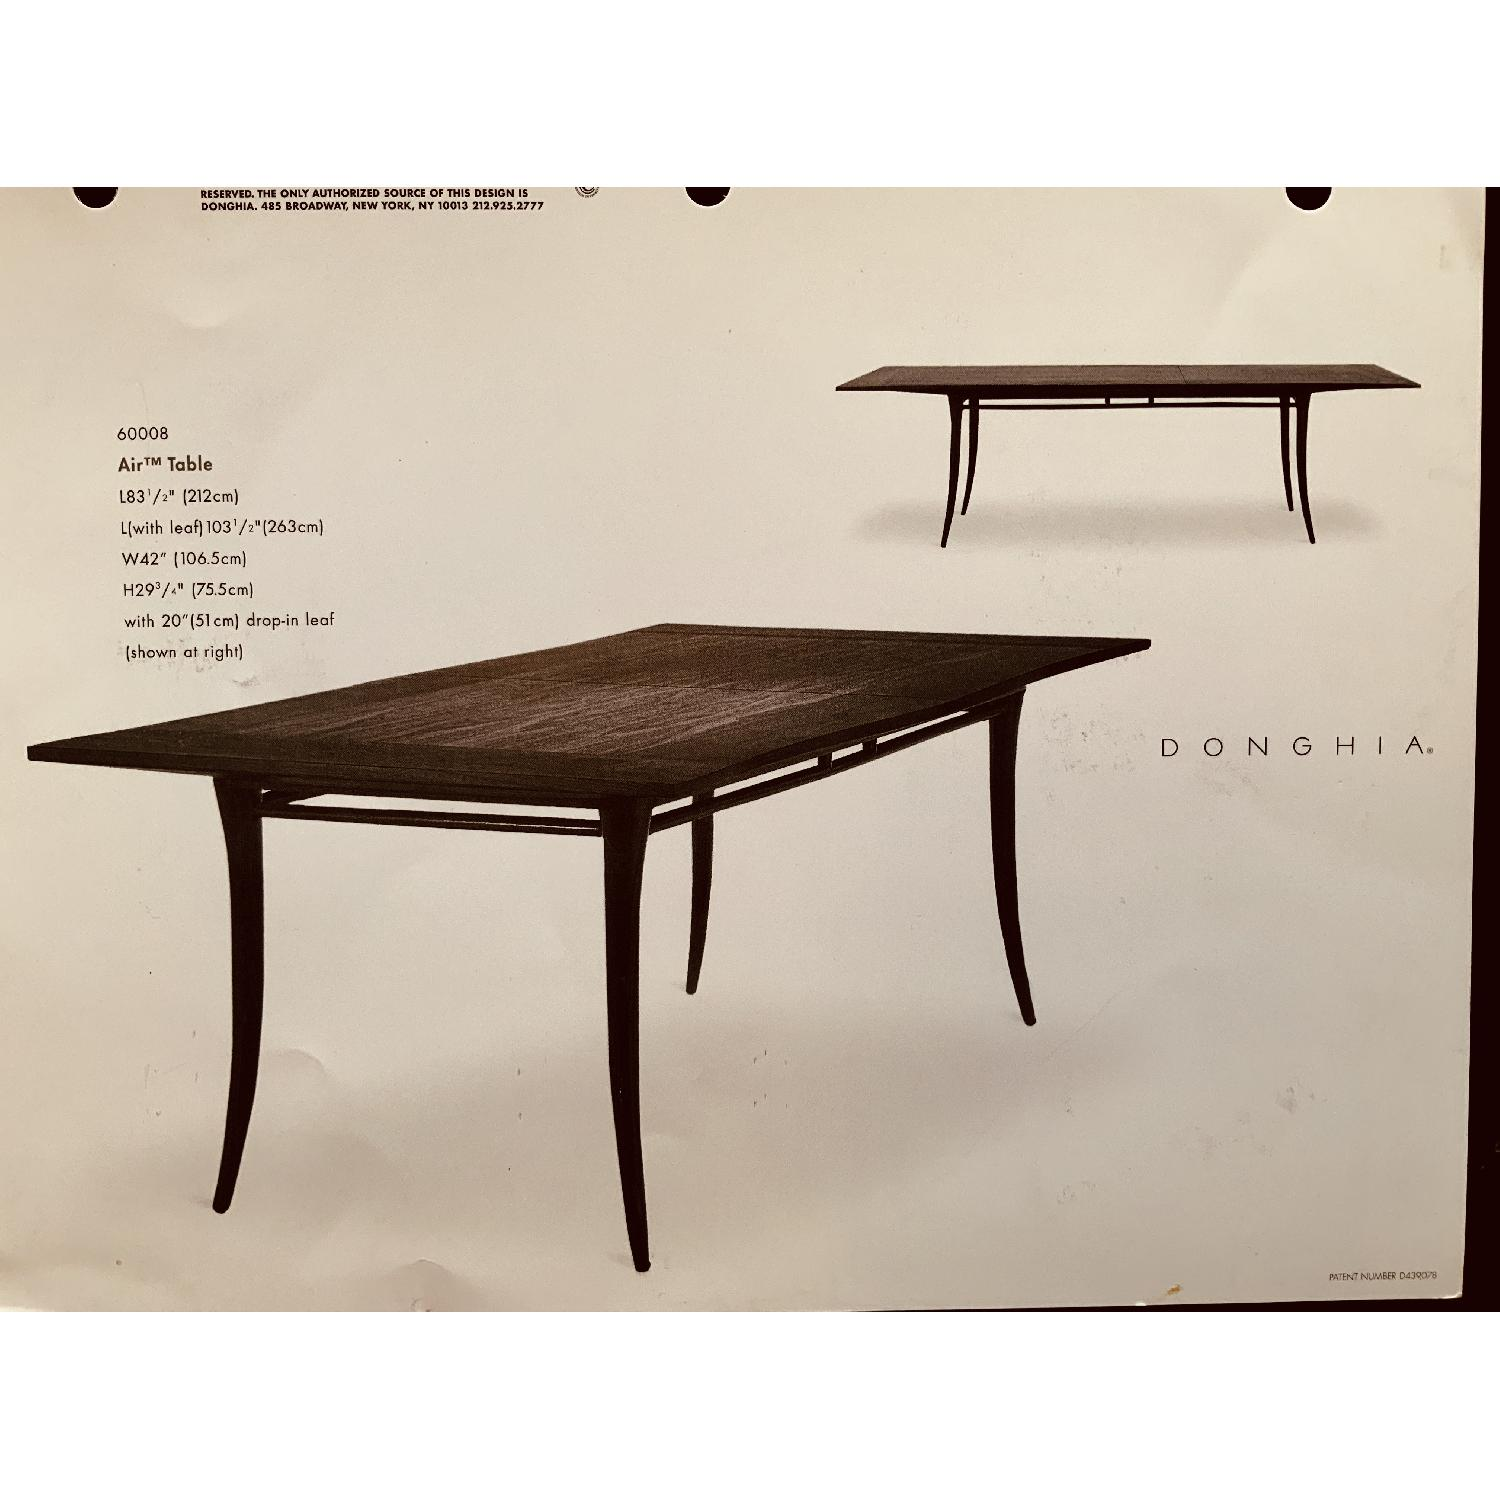 Donghia Air Dining Table w/ Leaf